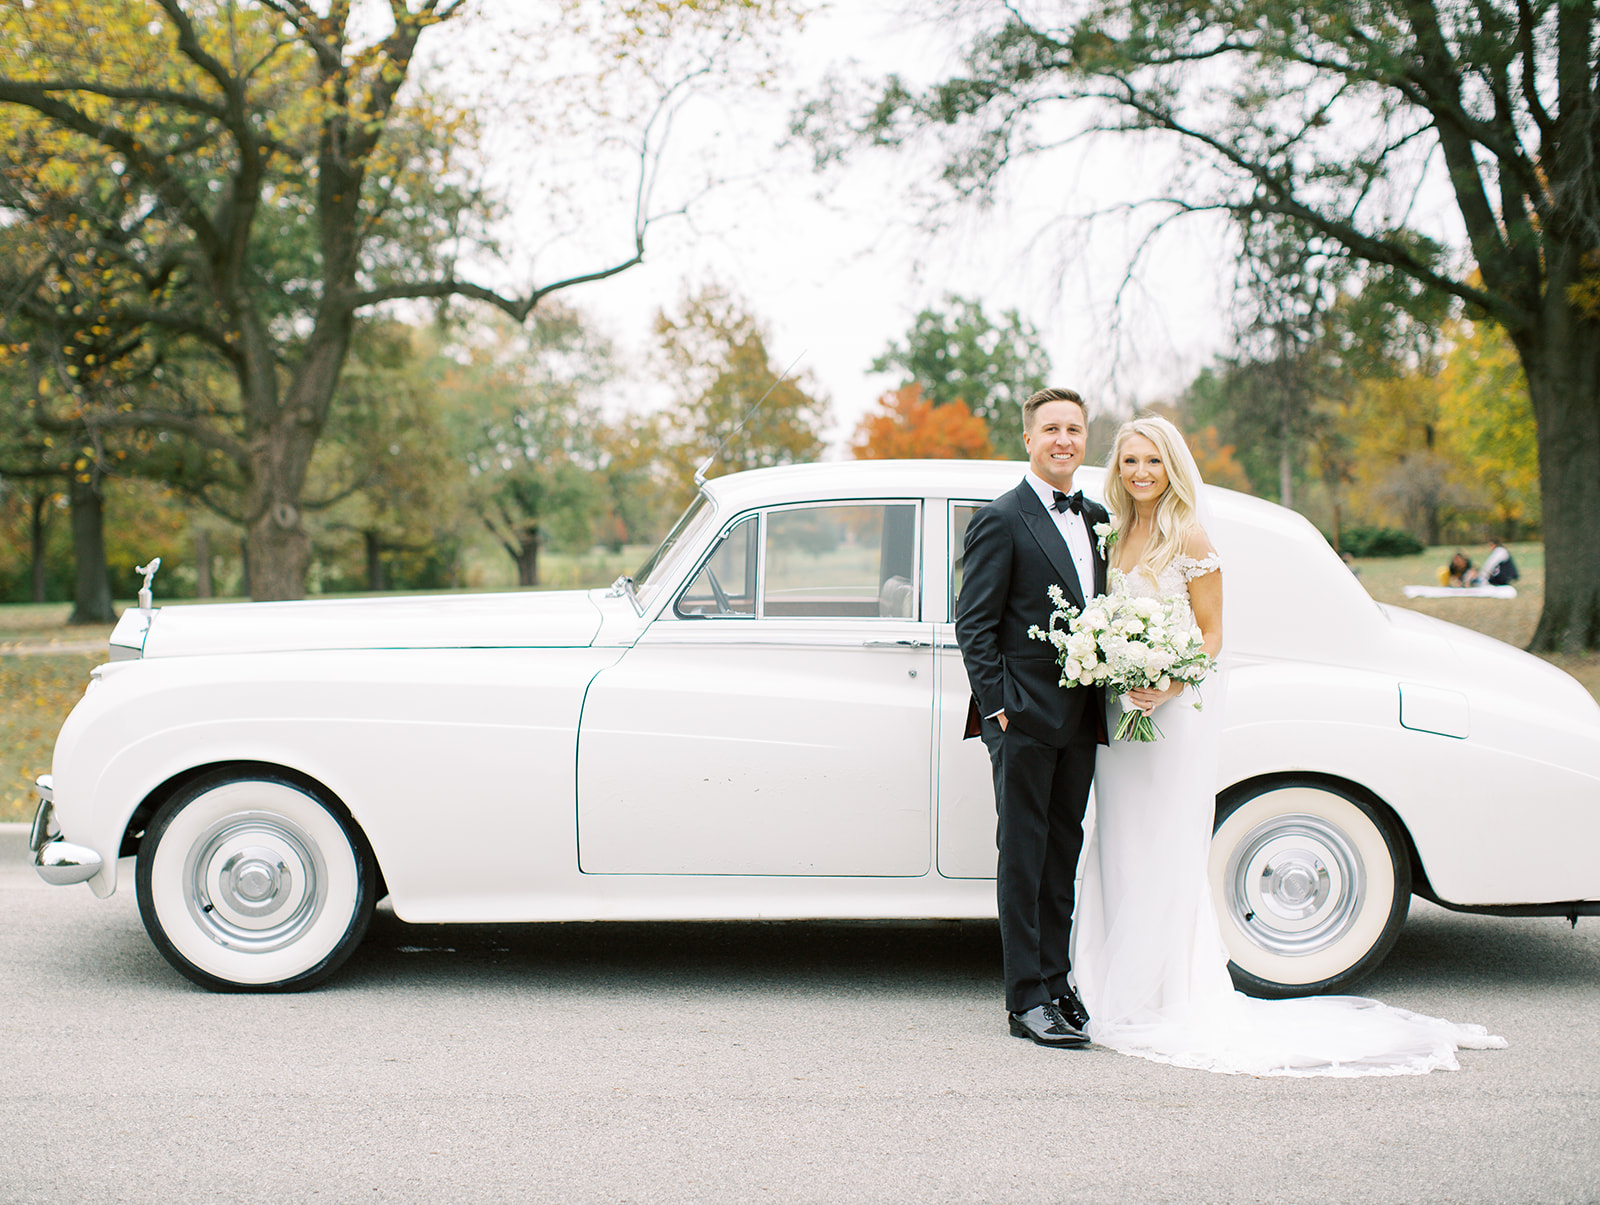 Bride and groom in front of classic car at Ritz Charles wedding